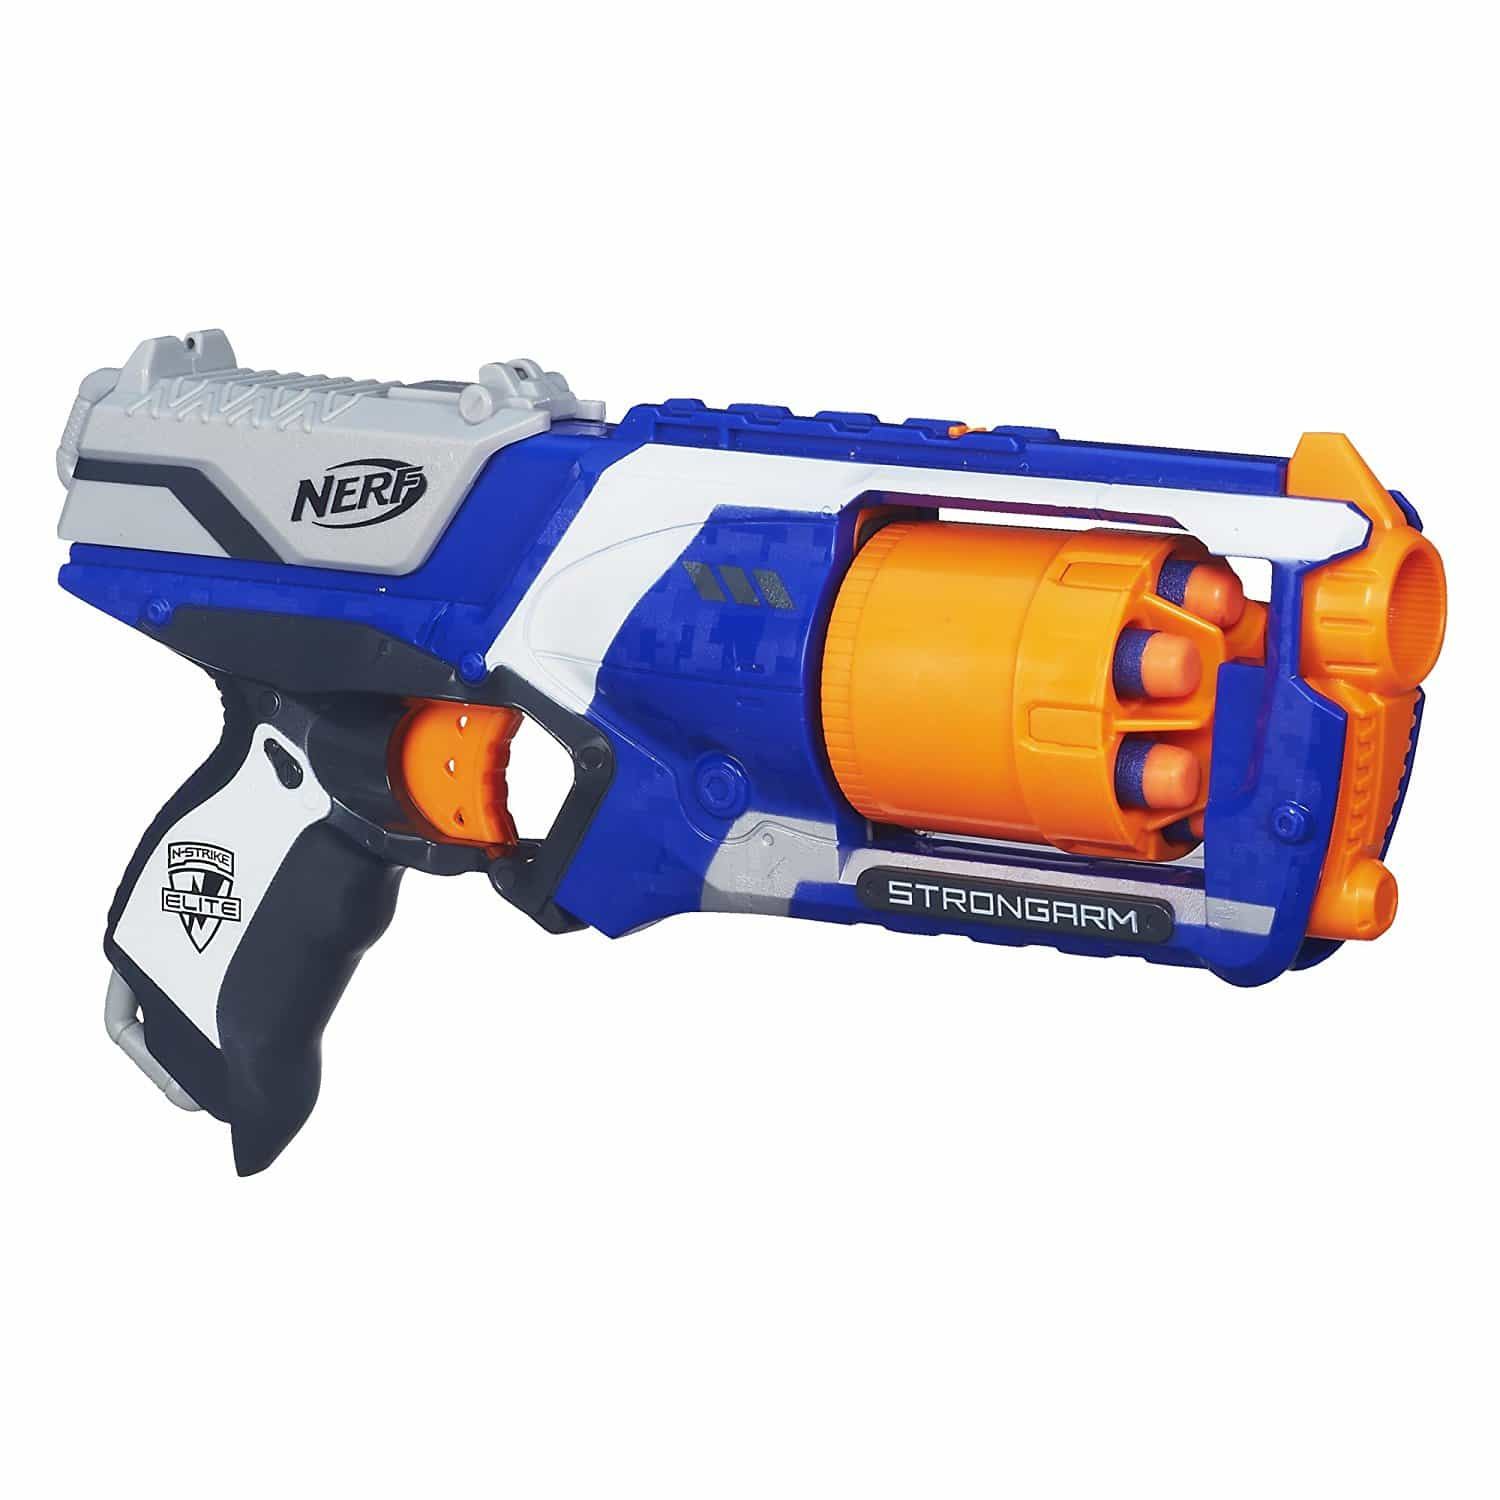 Nerf N-Strike Elite Strongarm Blaster Revies